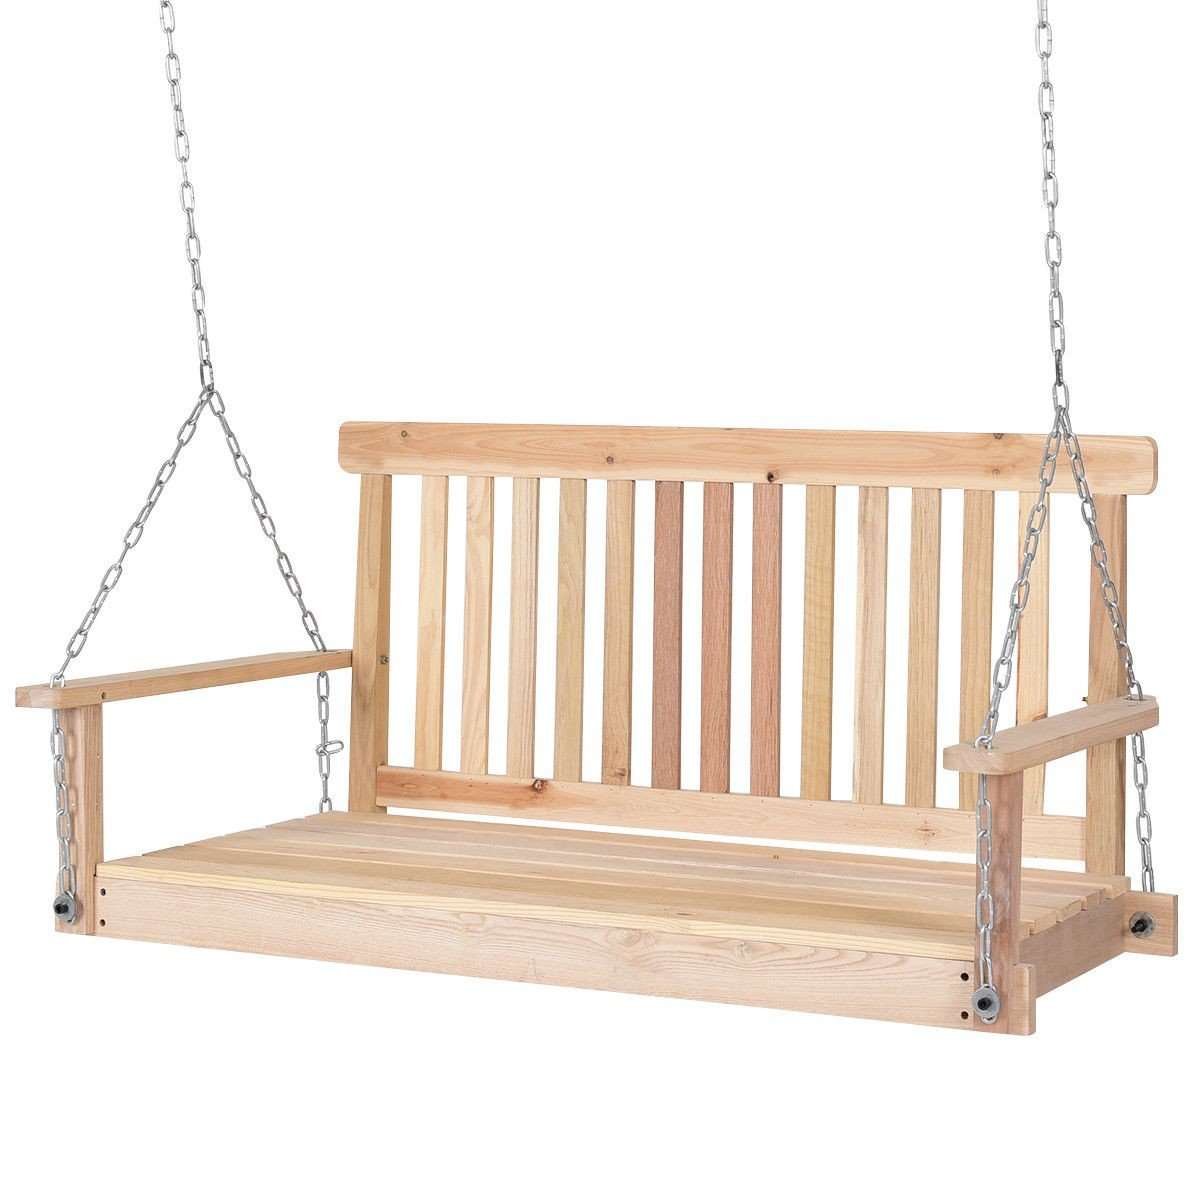 Wood Hanging Bench 2 Person Porch Loveseat | Porch Swing Regarding 2 Person Natural Cedar Wood Outdoor Swings (View 2 of 25)